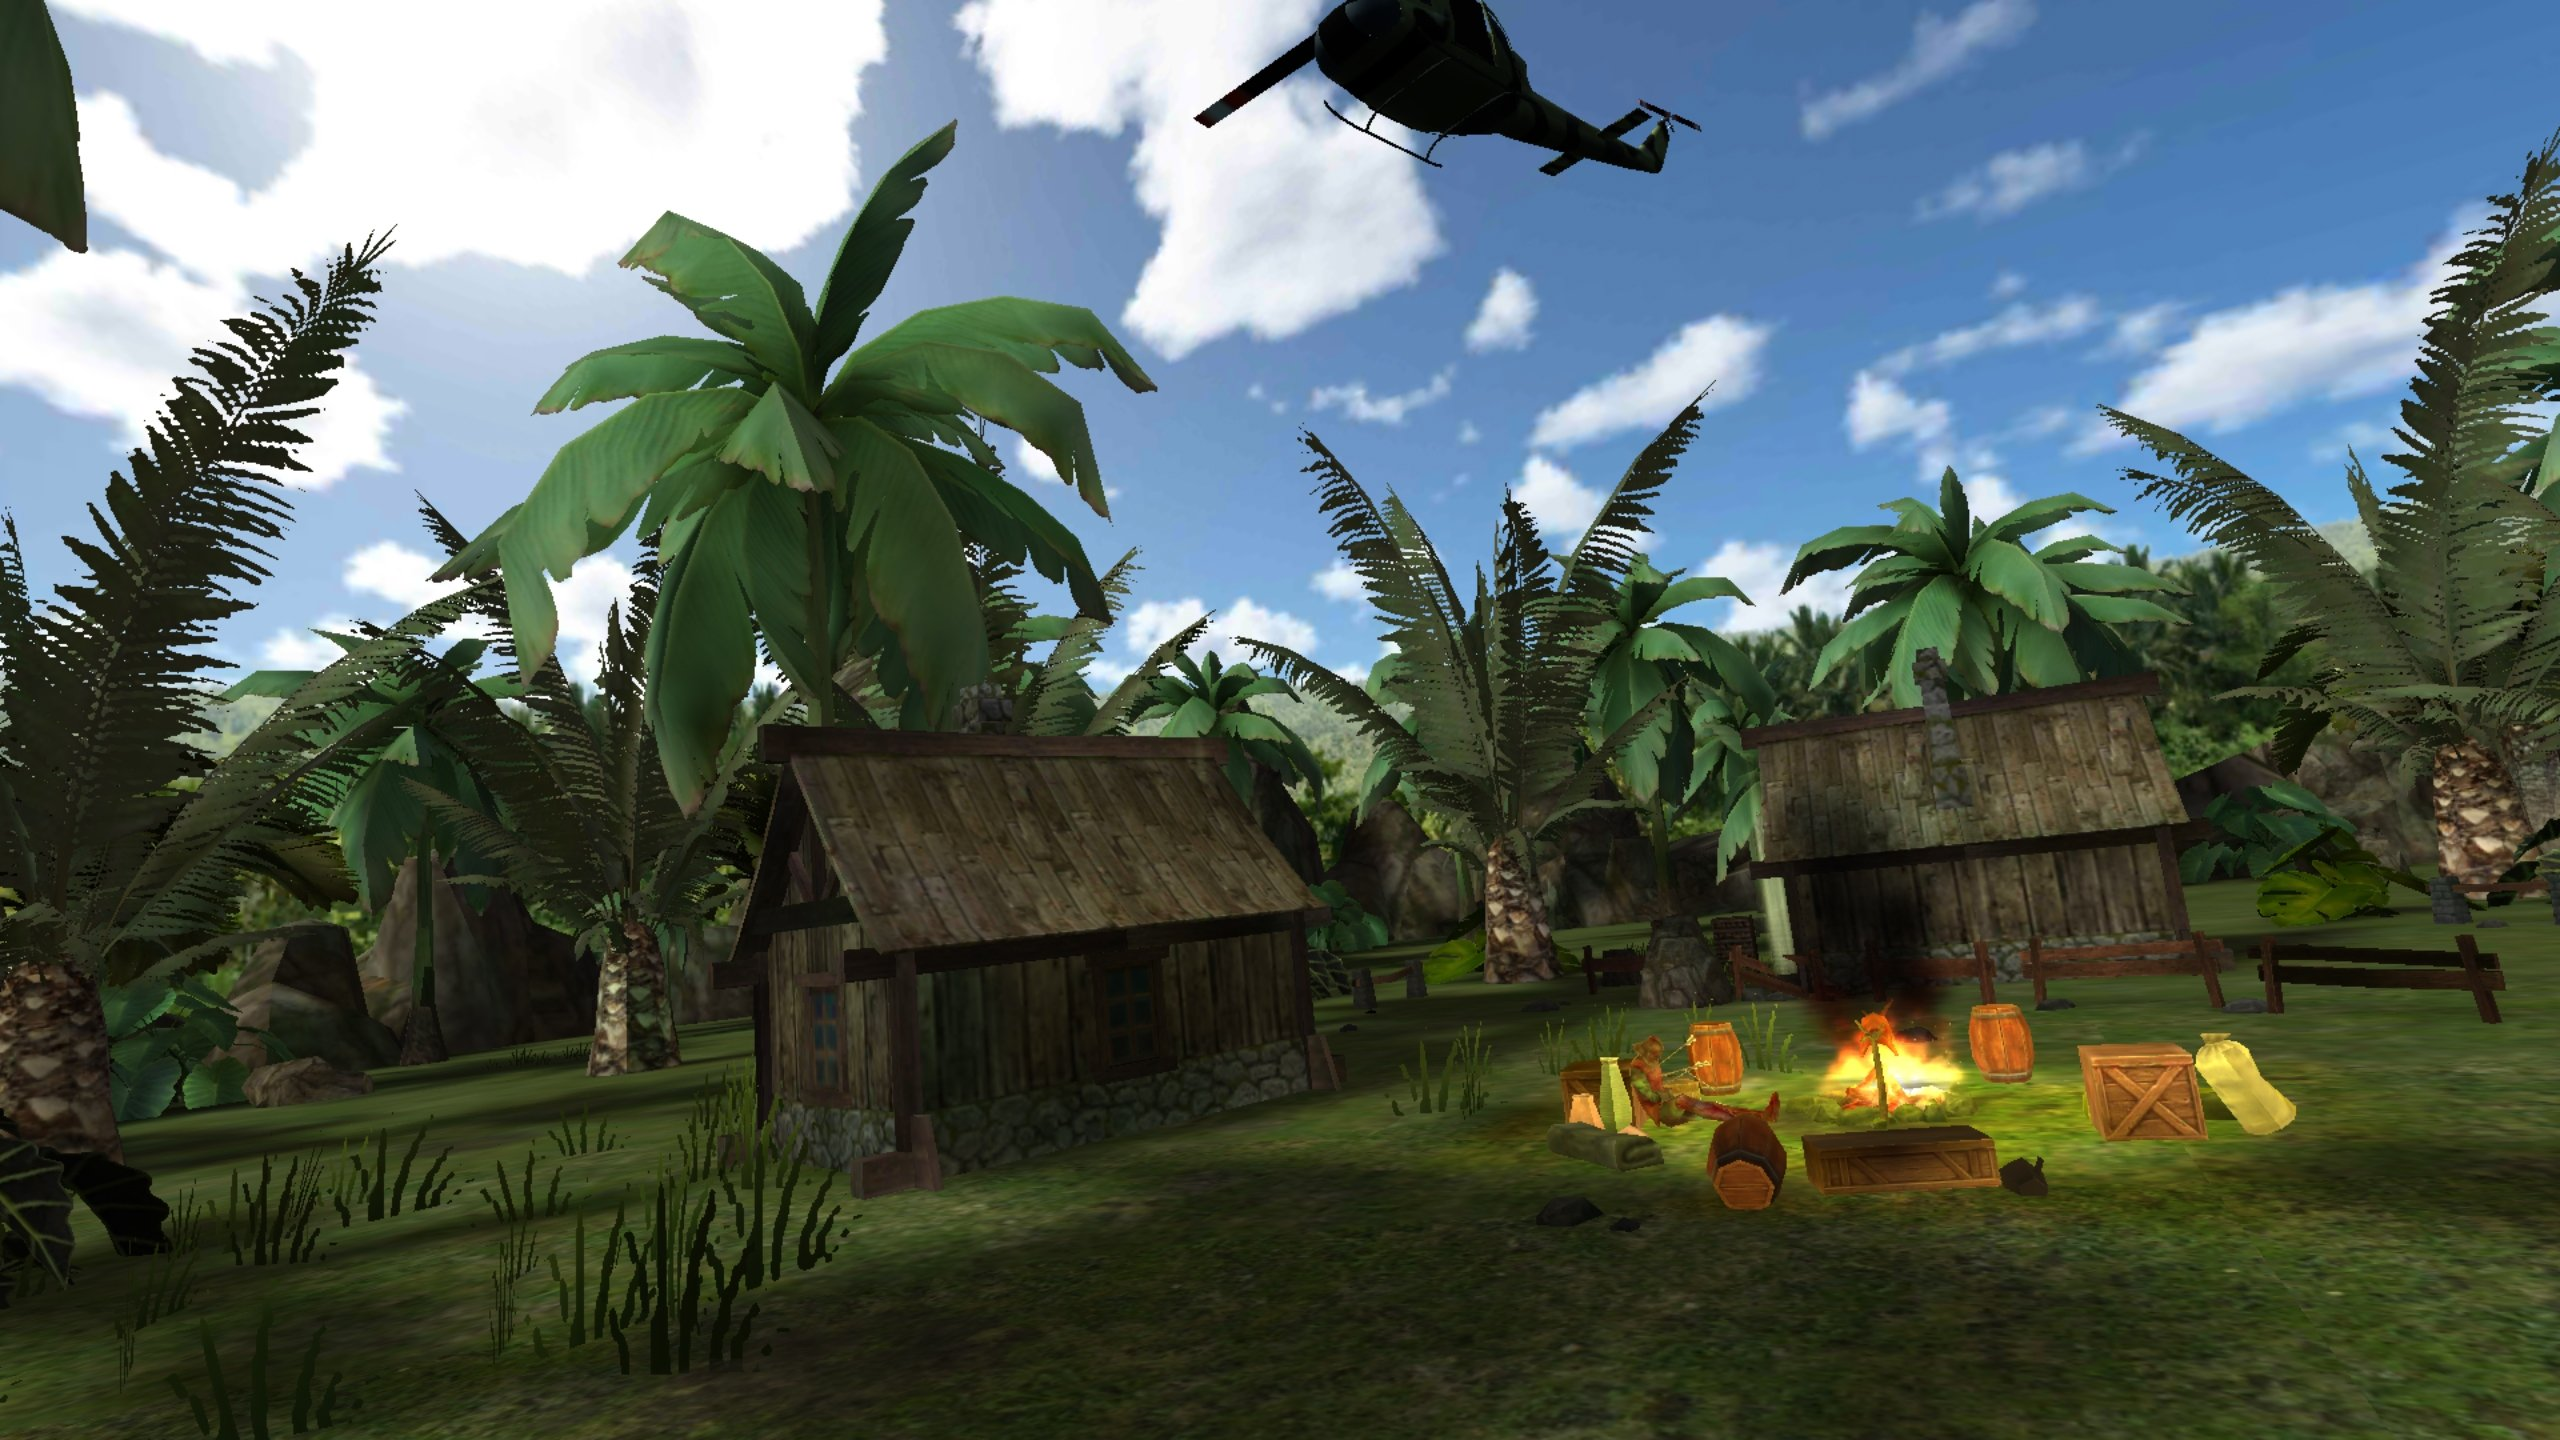 Jurassic VR - Google Cardboard 1 7 4 - Download for Android